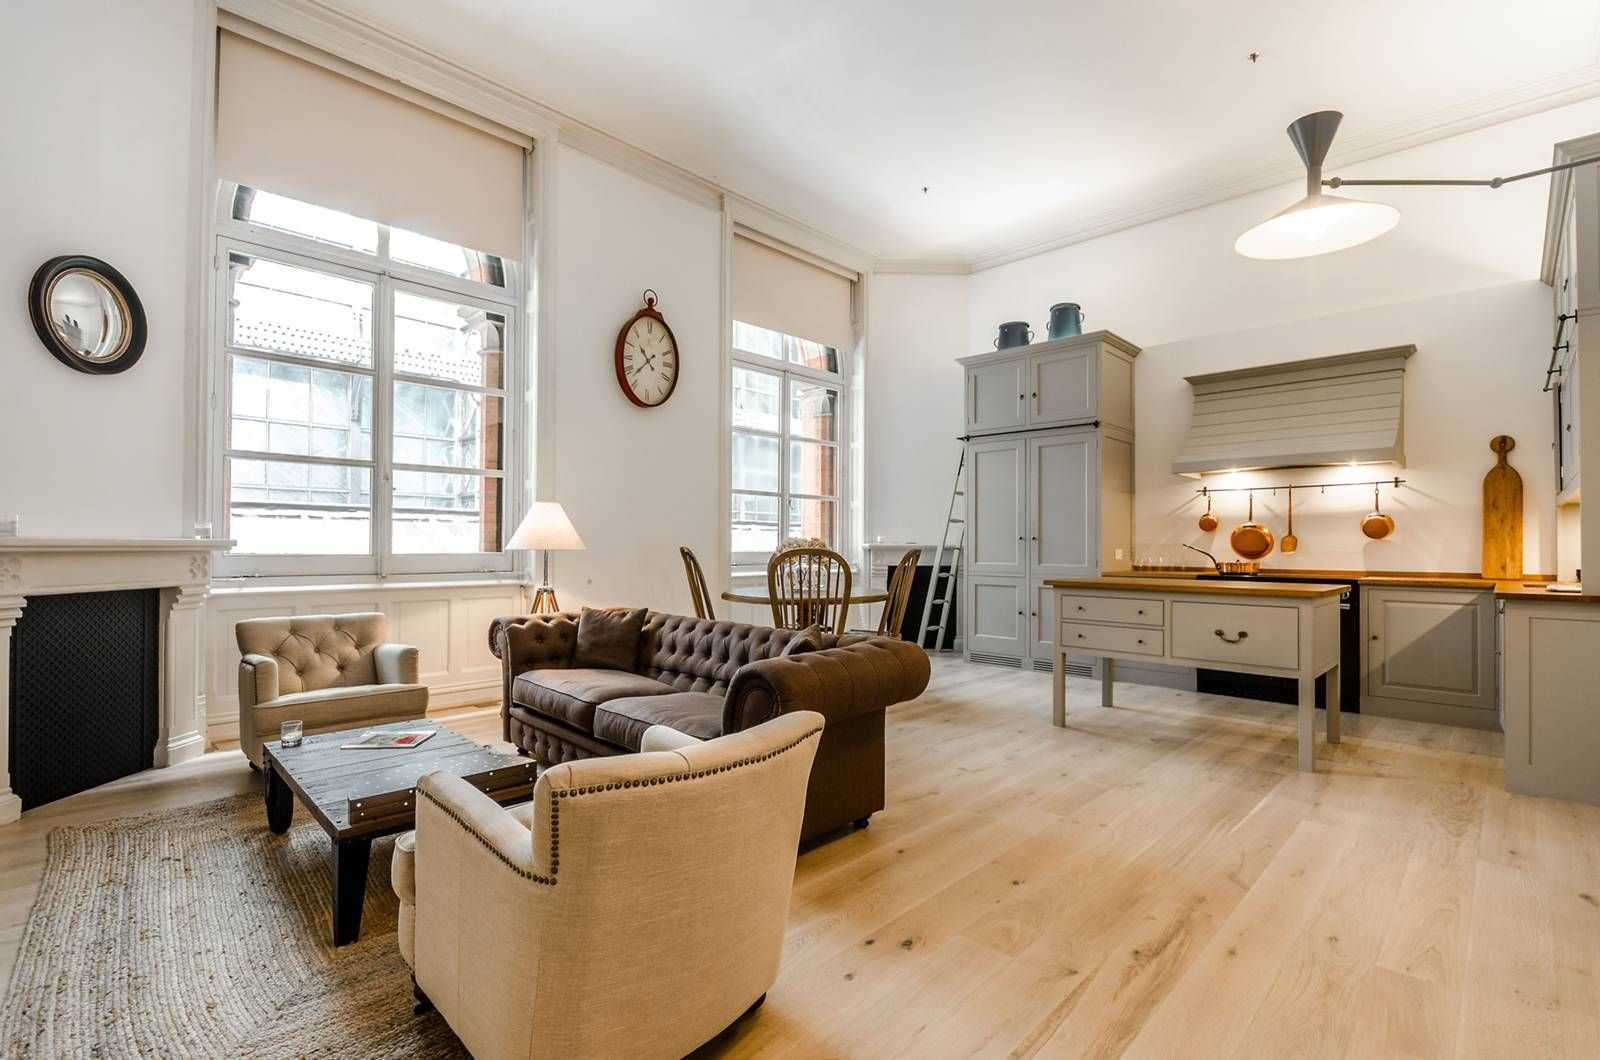 2 Bedroom Apartment For In St Pancras Chambers Camden Nw1 Through Foxtons Property